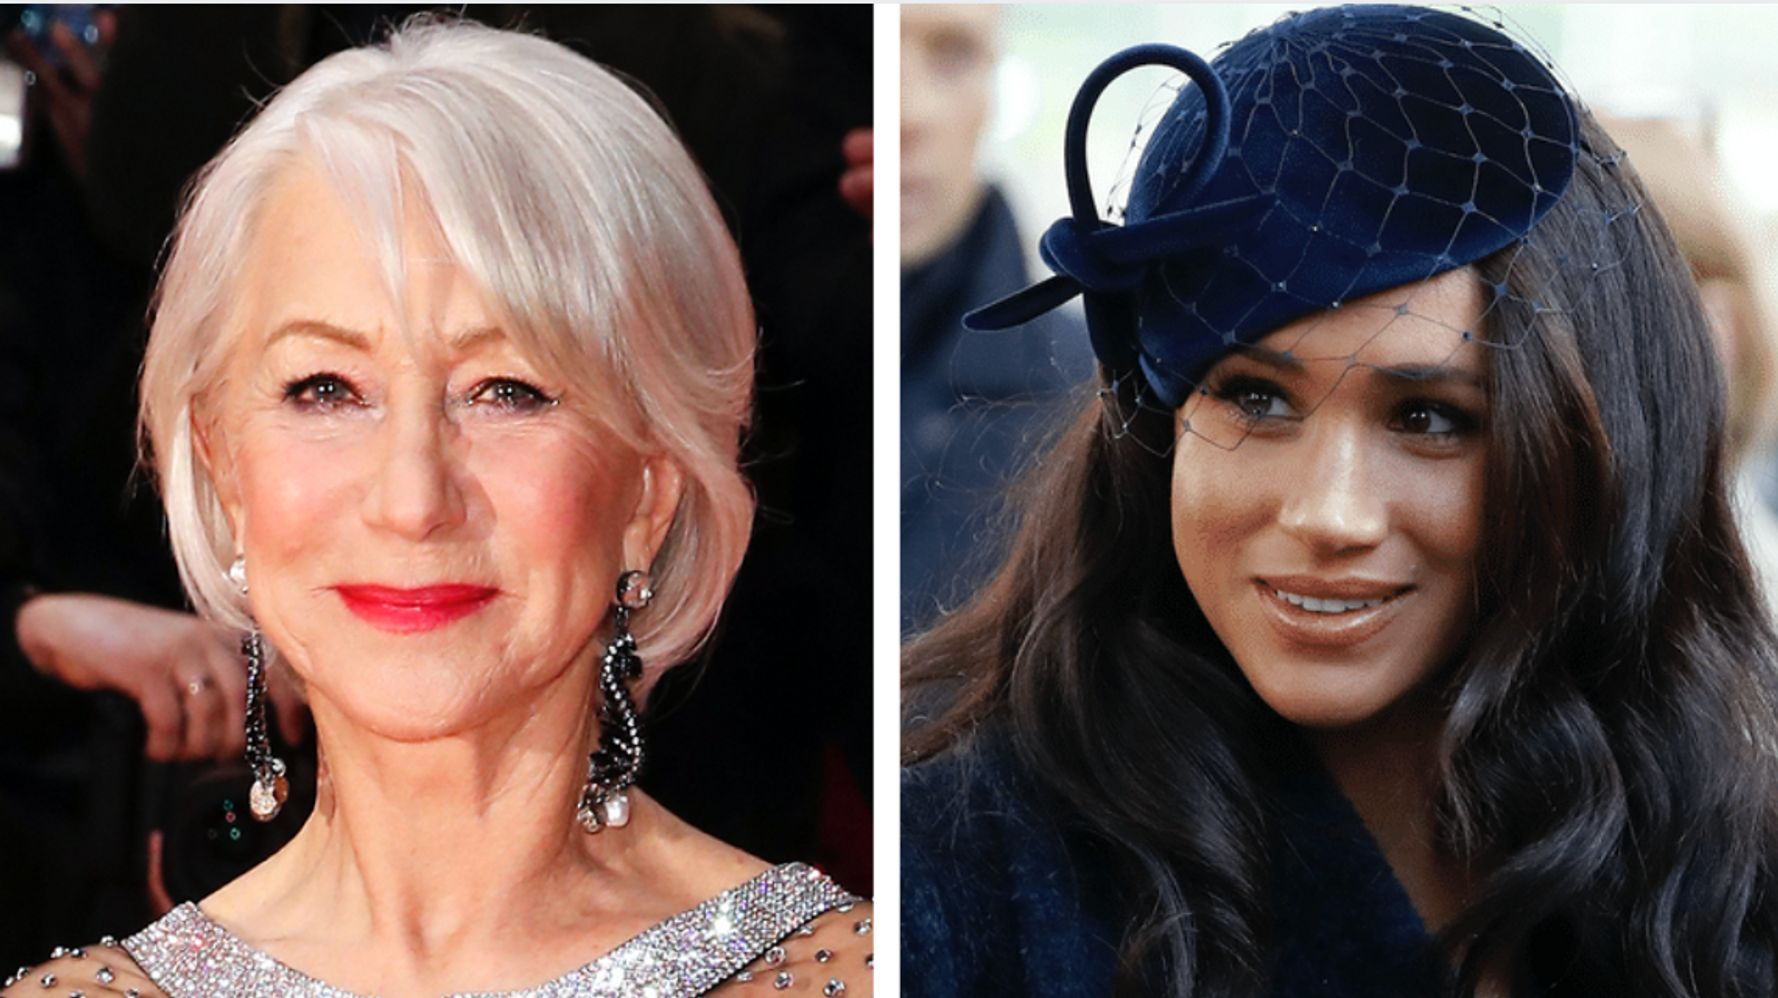 Helen Mirren Has A Lot To Say About Harry And Meghan Markle's Exit